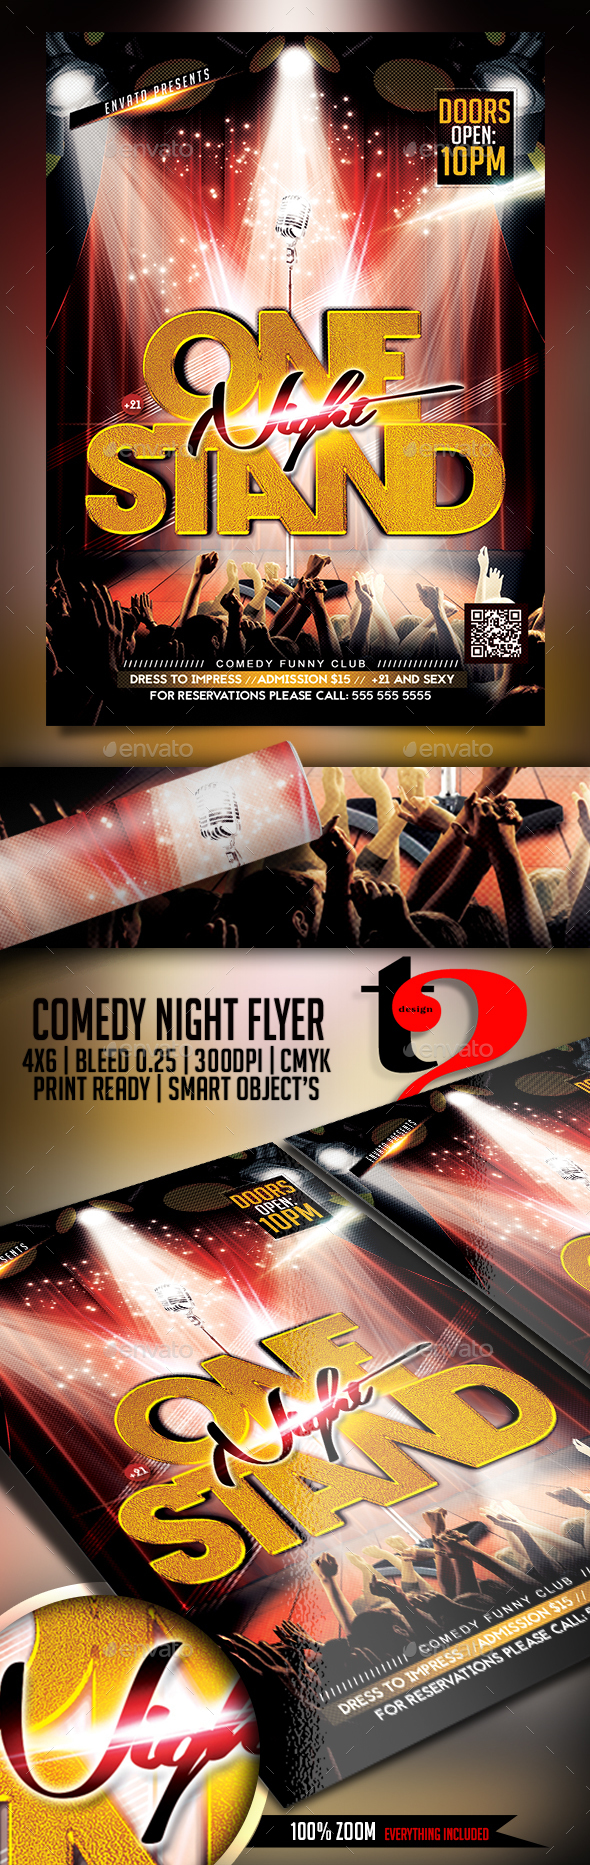 Comedy Night Flyer Template - Clubs & Parties Events